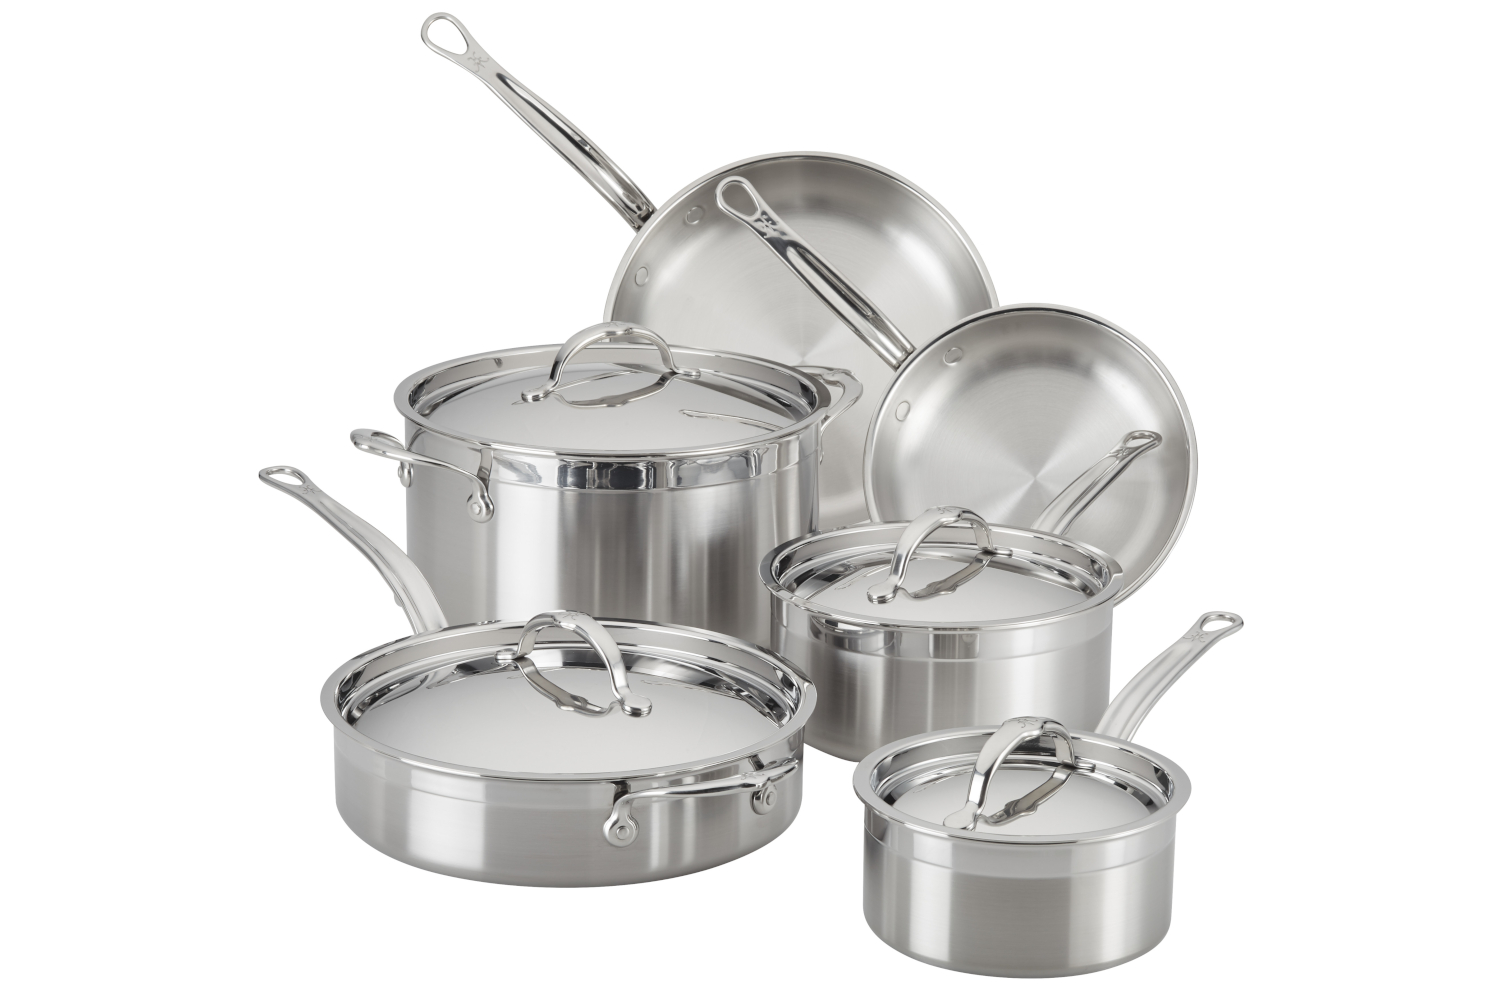 Hestan ProBond Forged Stainless Steel 10 Piece Cookware Set